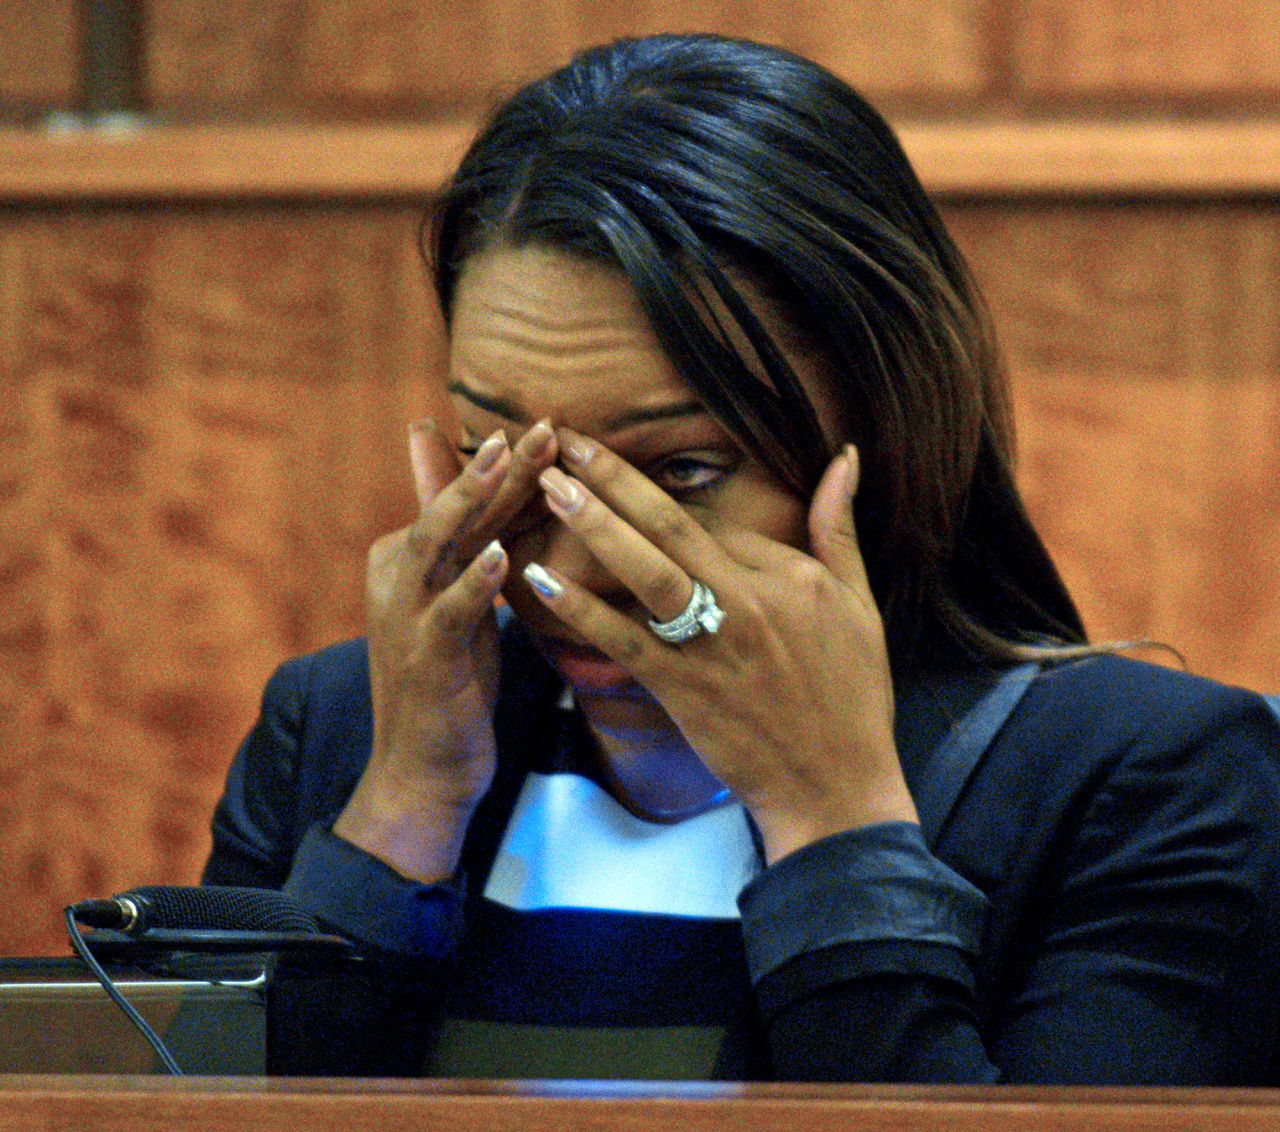 Fiancee Testifies She Discarded Box At Aaron Hernandez's